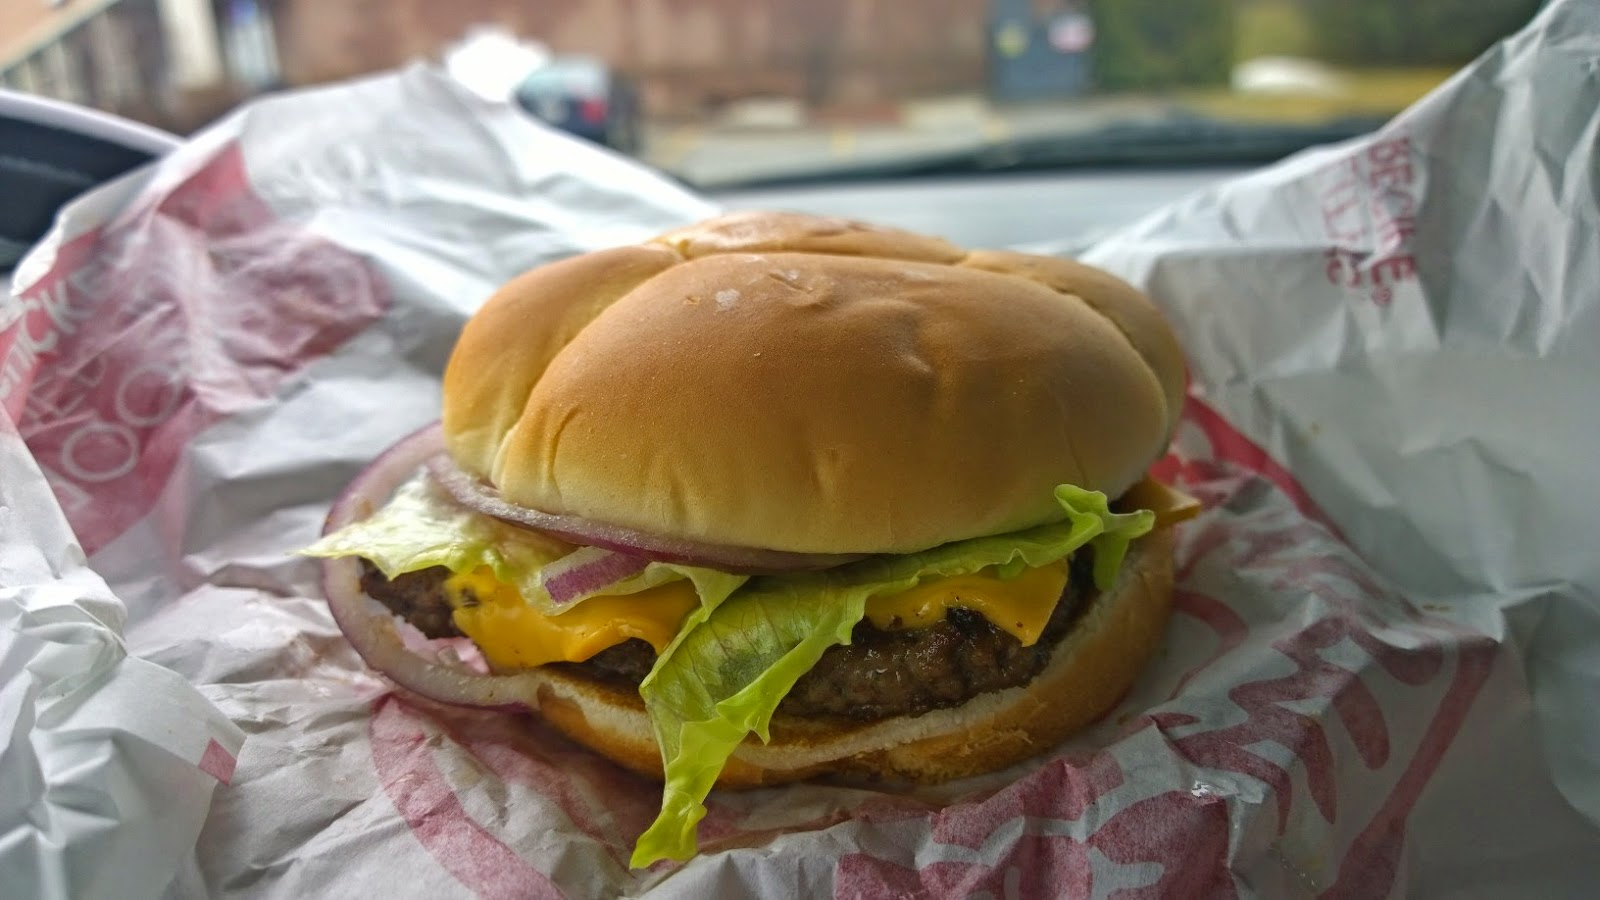 Calorie count wendy's single cheeseburger